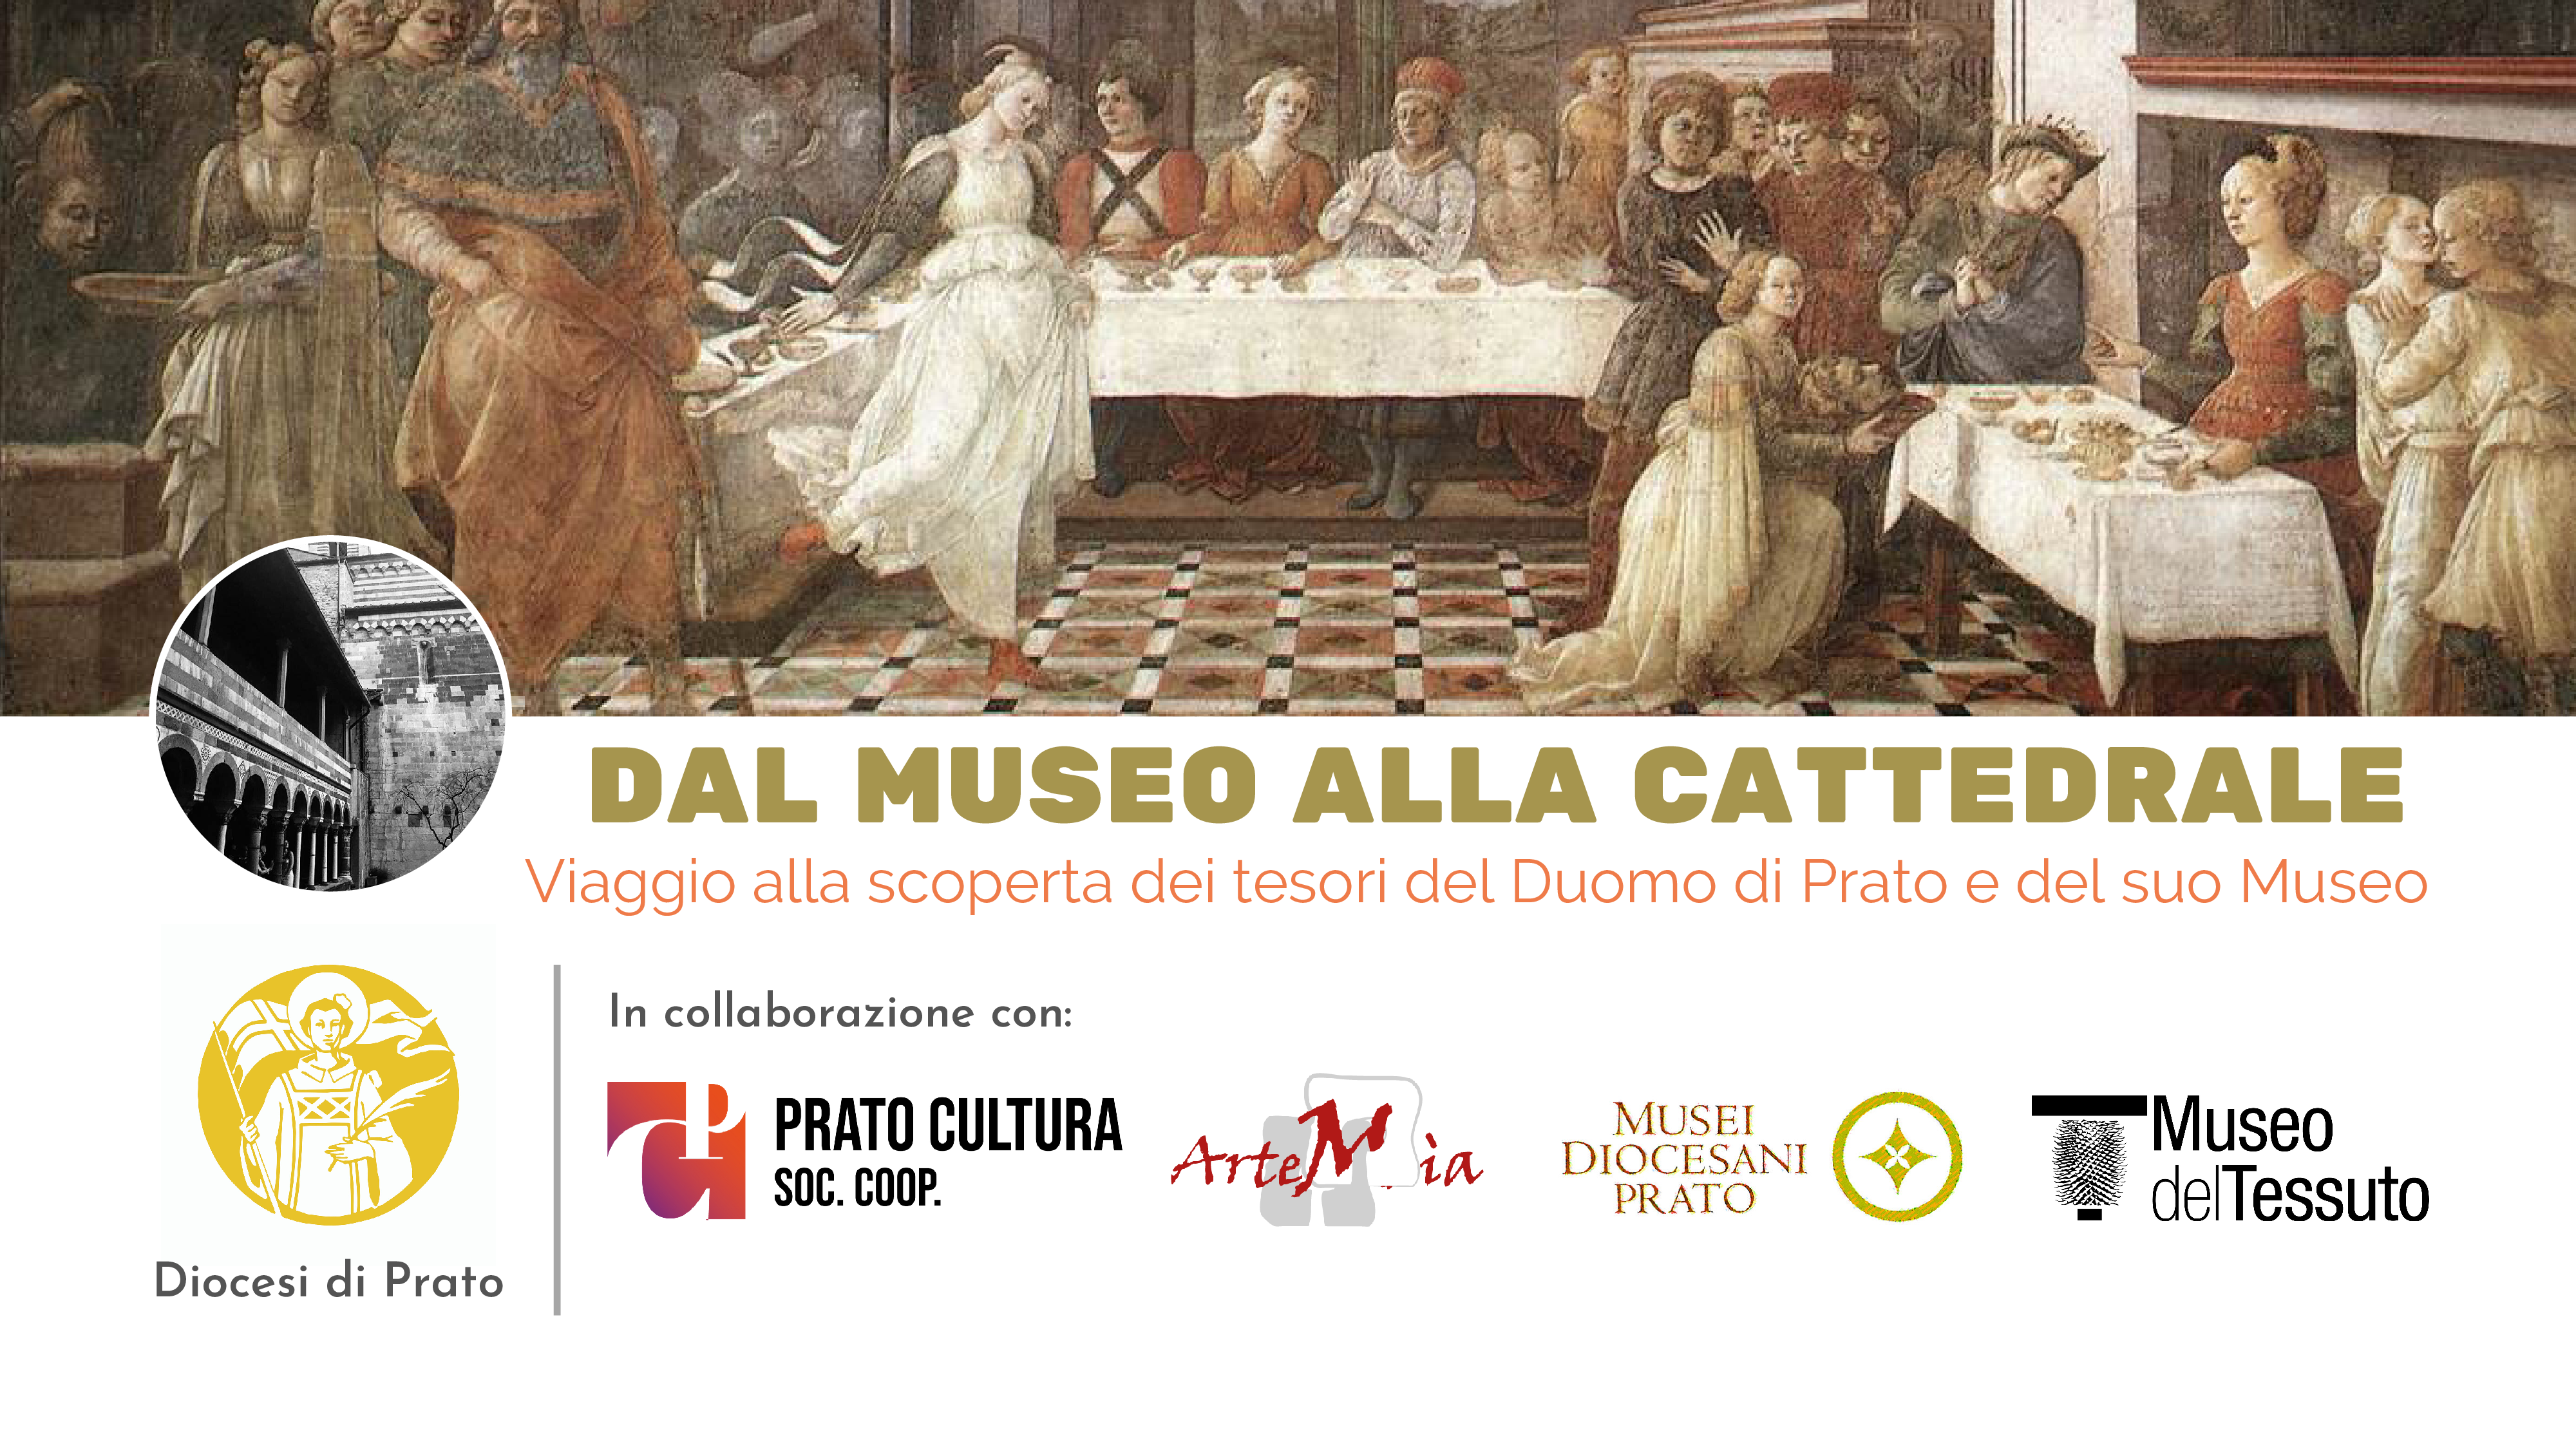 Visita: Dal Museo alla Cattedrale. Viaggio alla scoperta dei tesori del Duomo di Prato